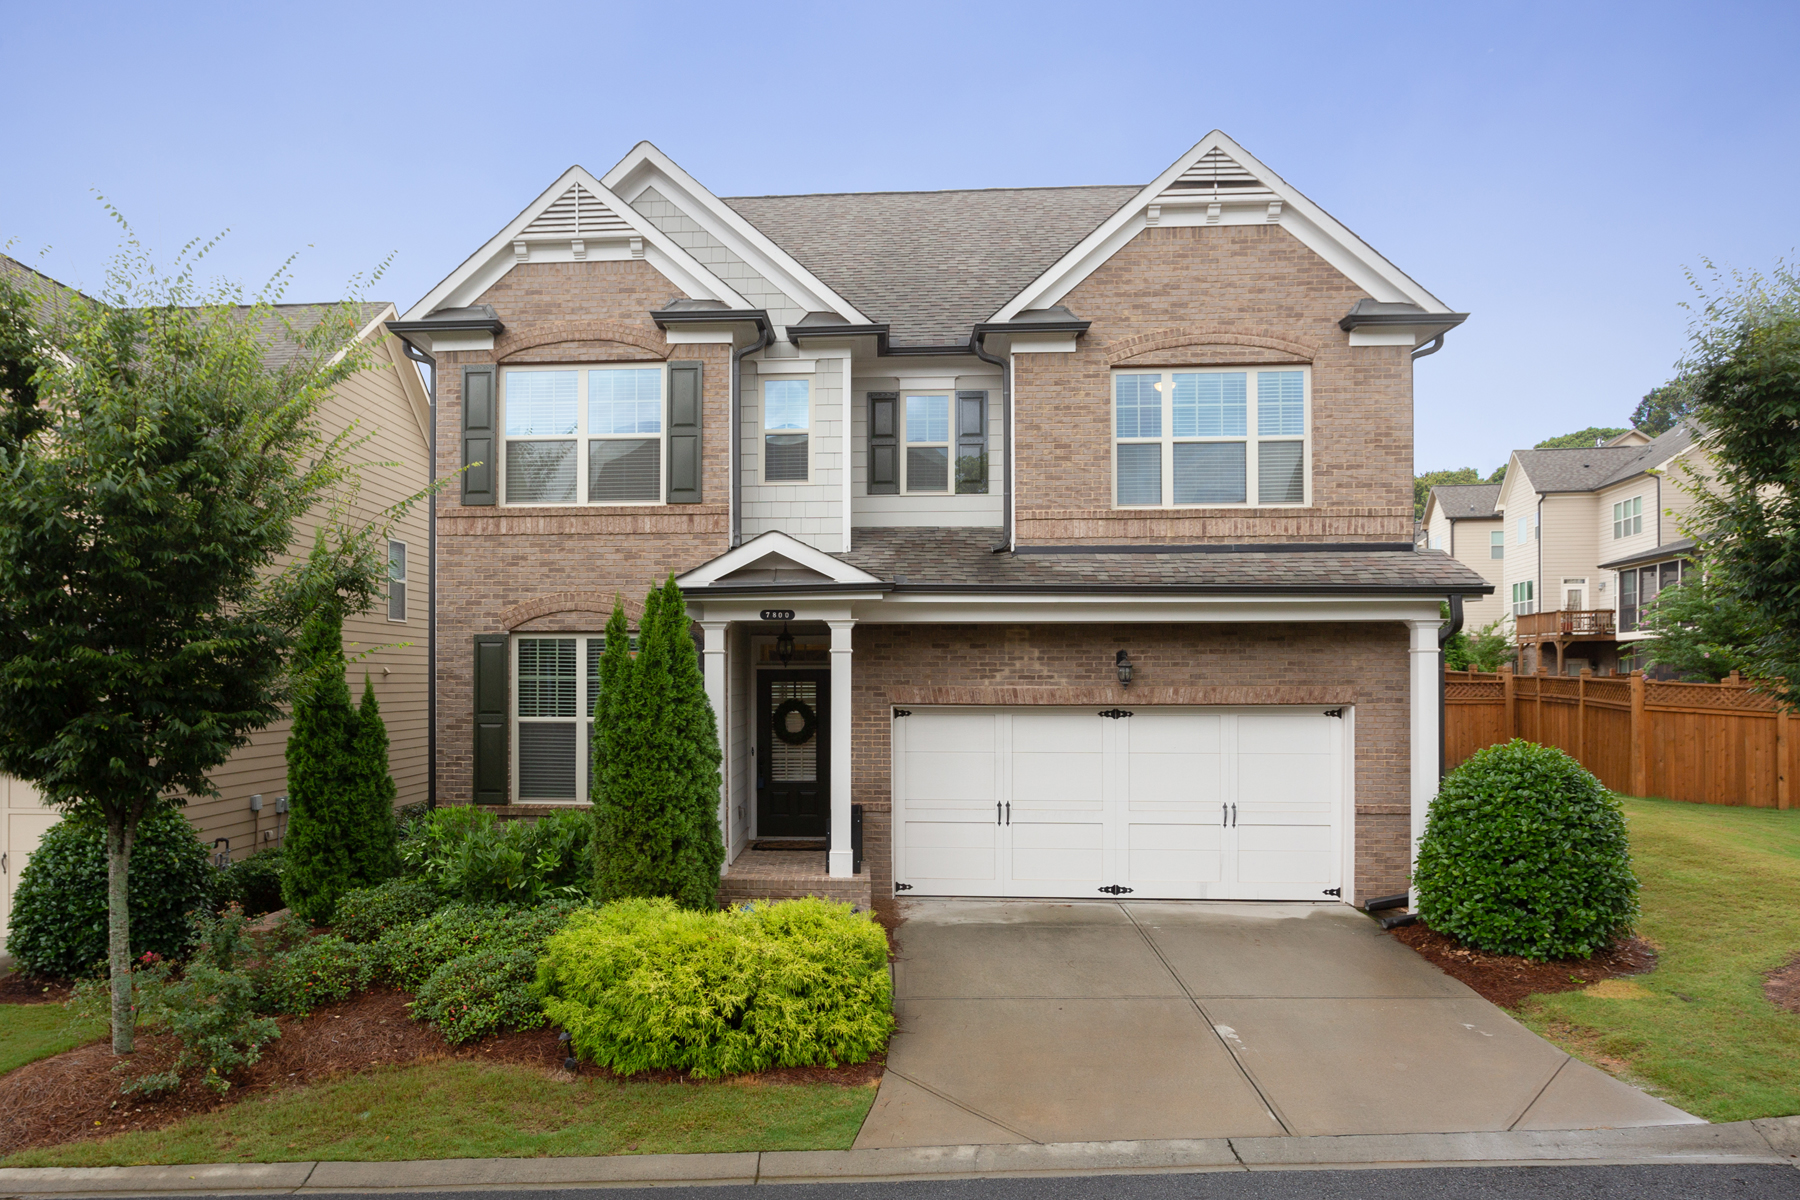 Single Family Home for Sale at Beautiful Sandy Springs Traditional 7800 Highland Bluff NE Sandy Springs, Georgia 30328 United States